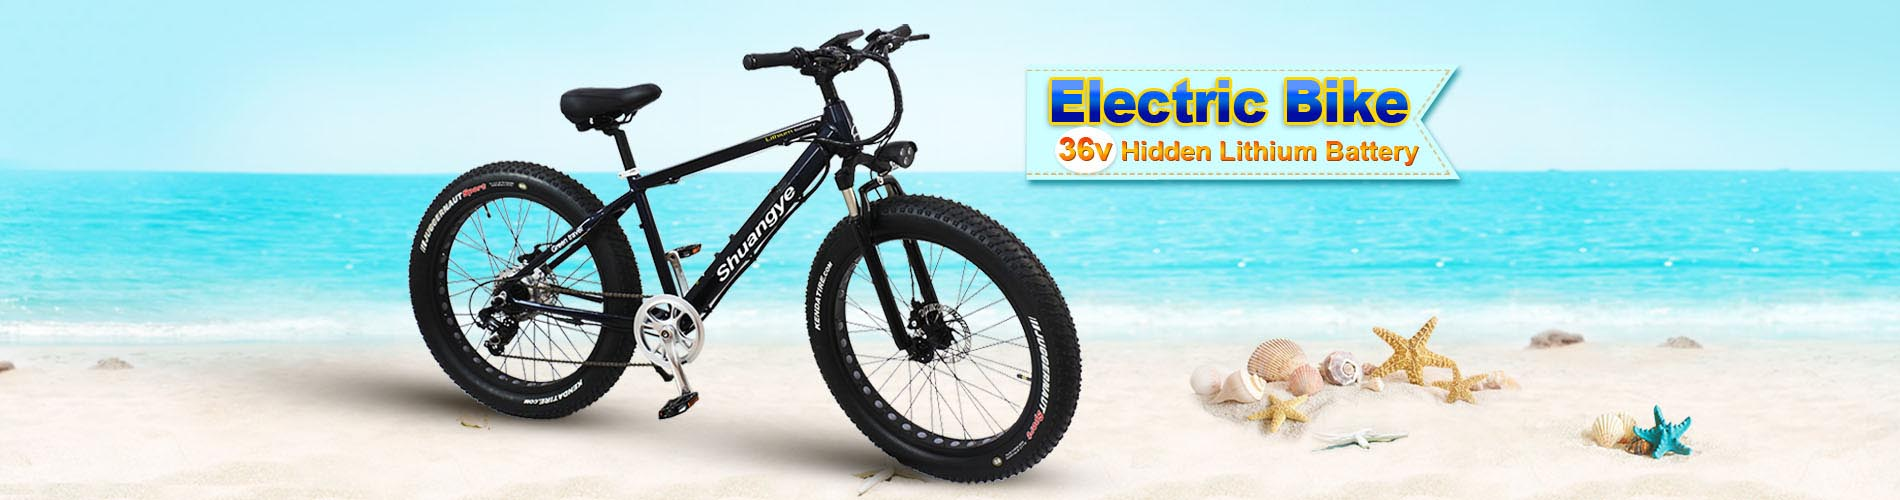 Safety electric power bikes are best choice